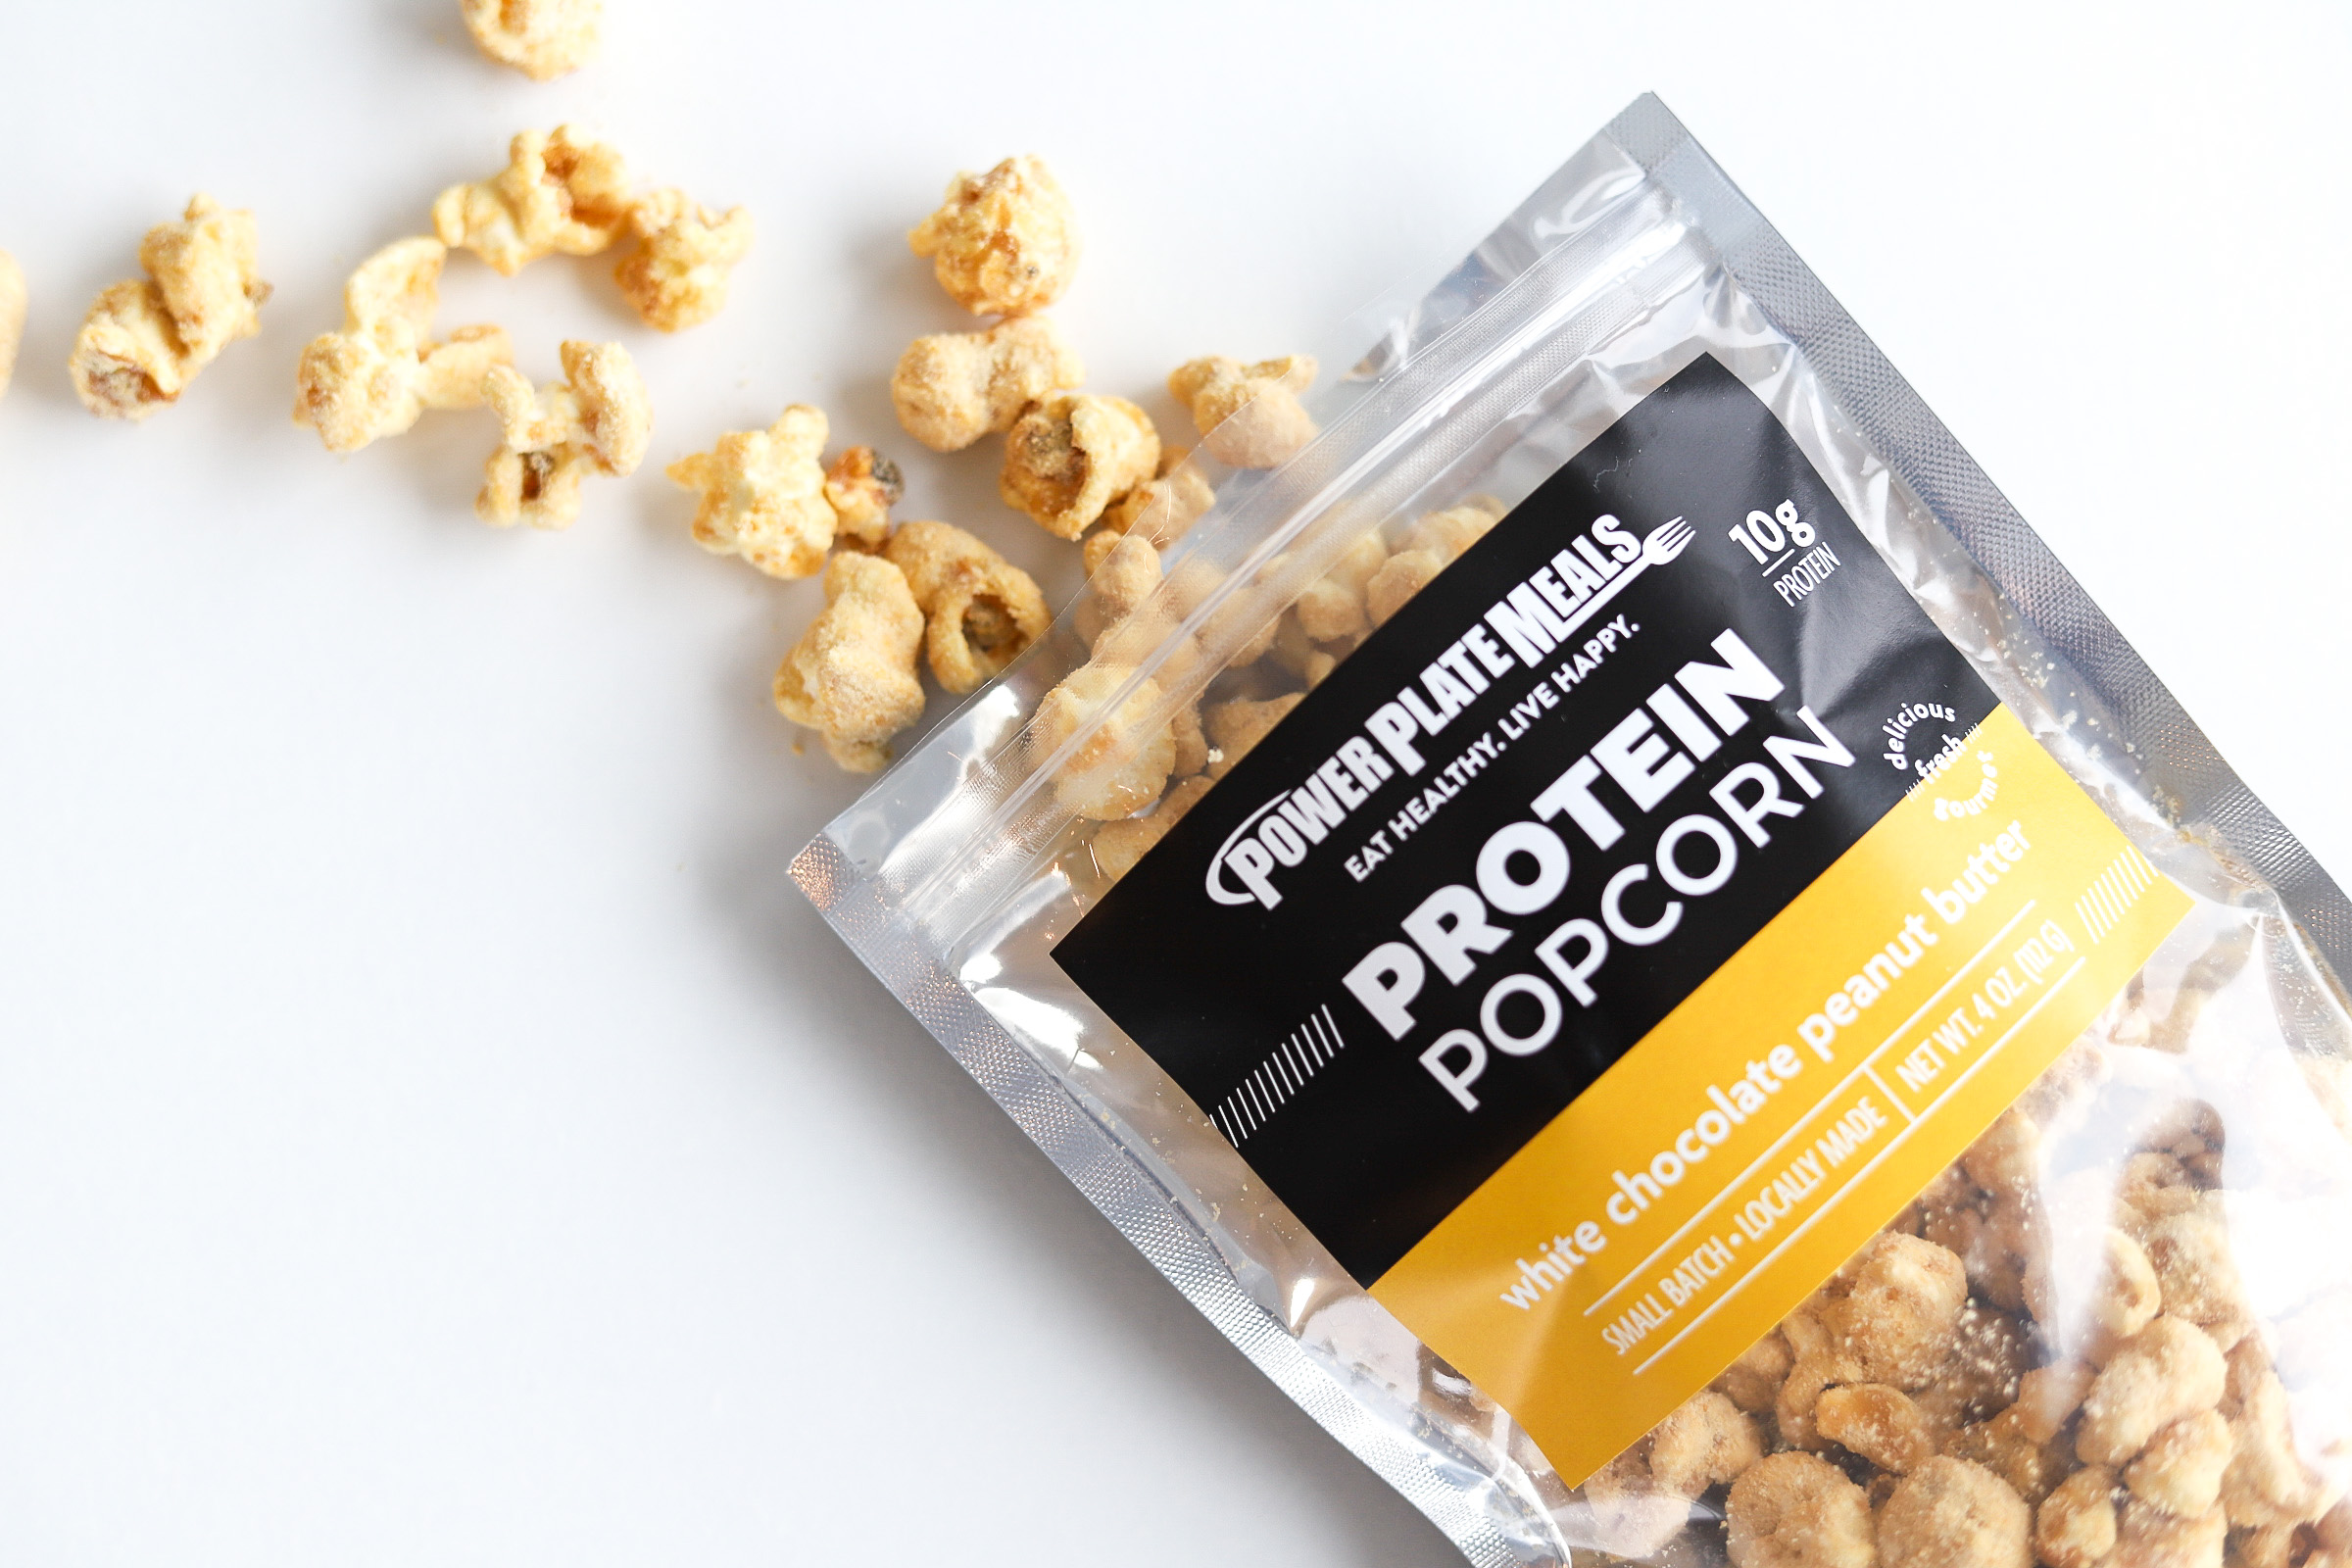 Introducing Protein Popcorn